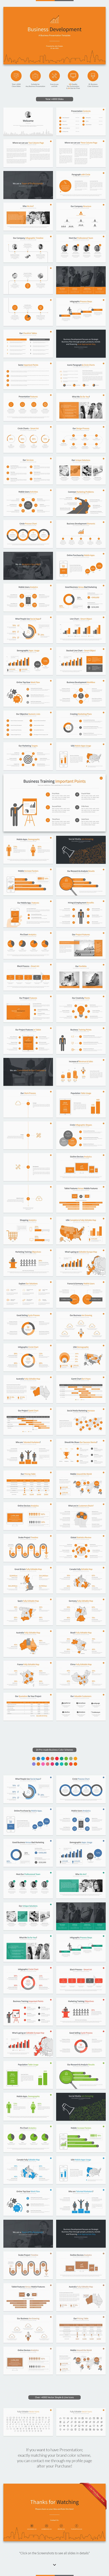 Business Development Google Slides Template - Business Developmen - Simple - Infographic - Google Slides - PowerPoint - Presentation - Diagrams - Graphs